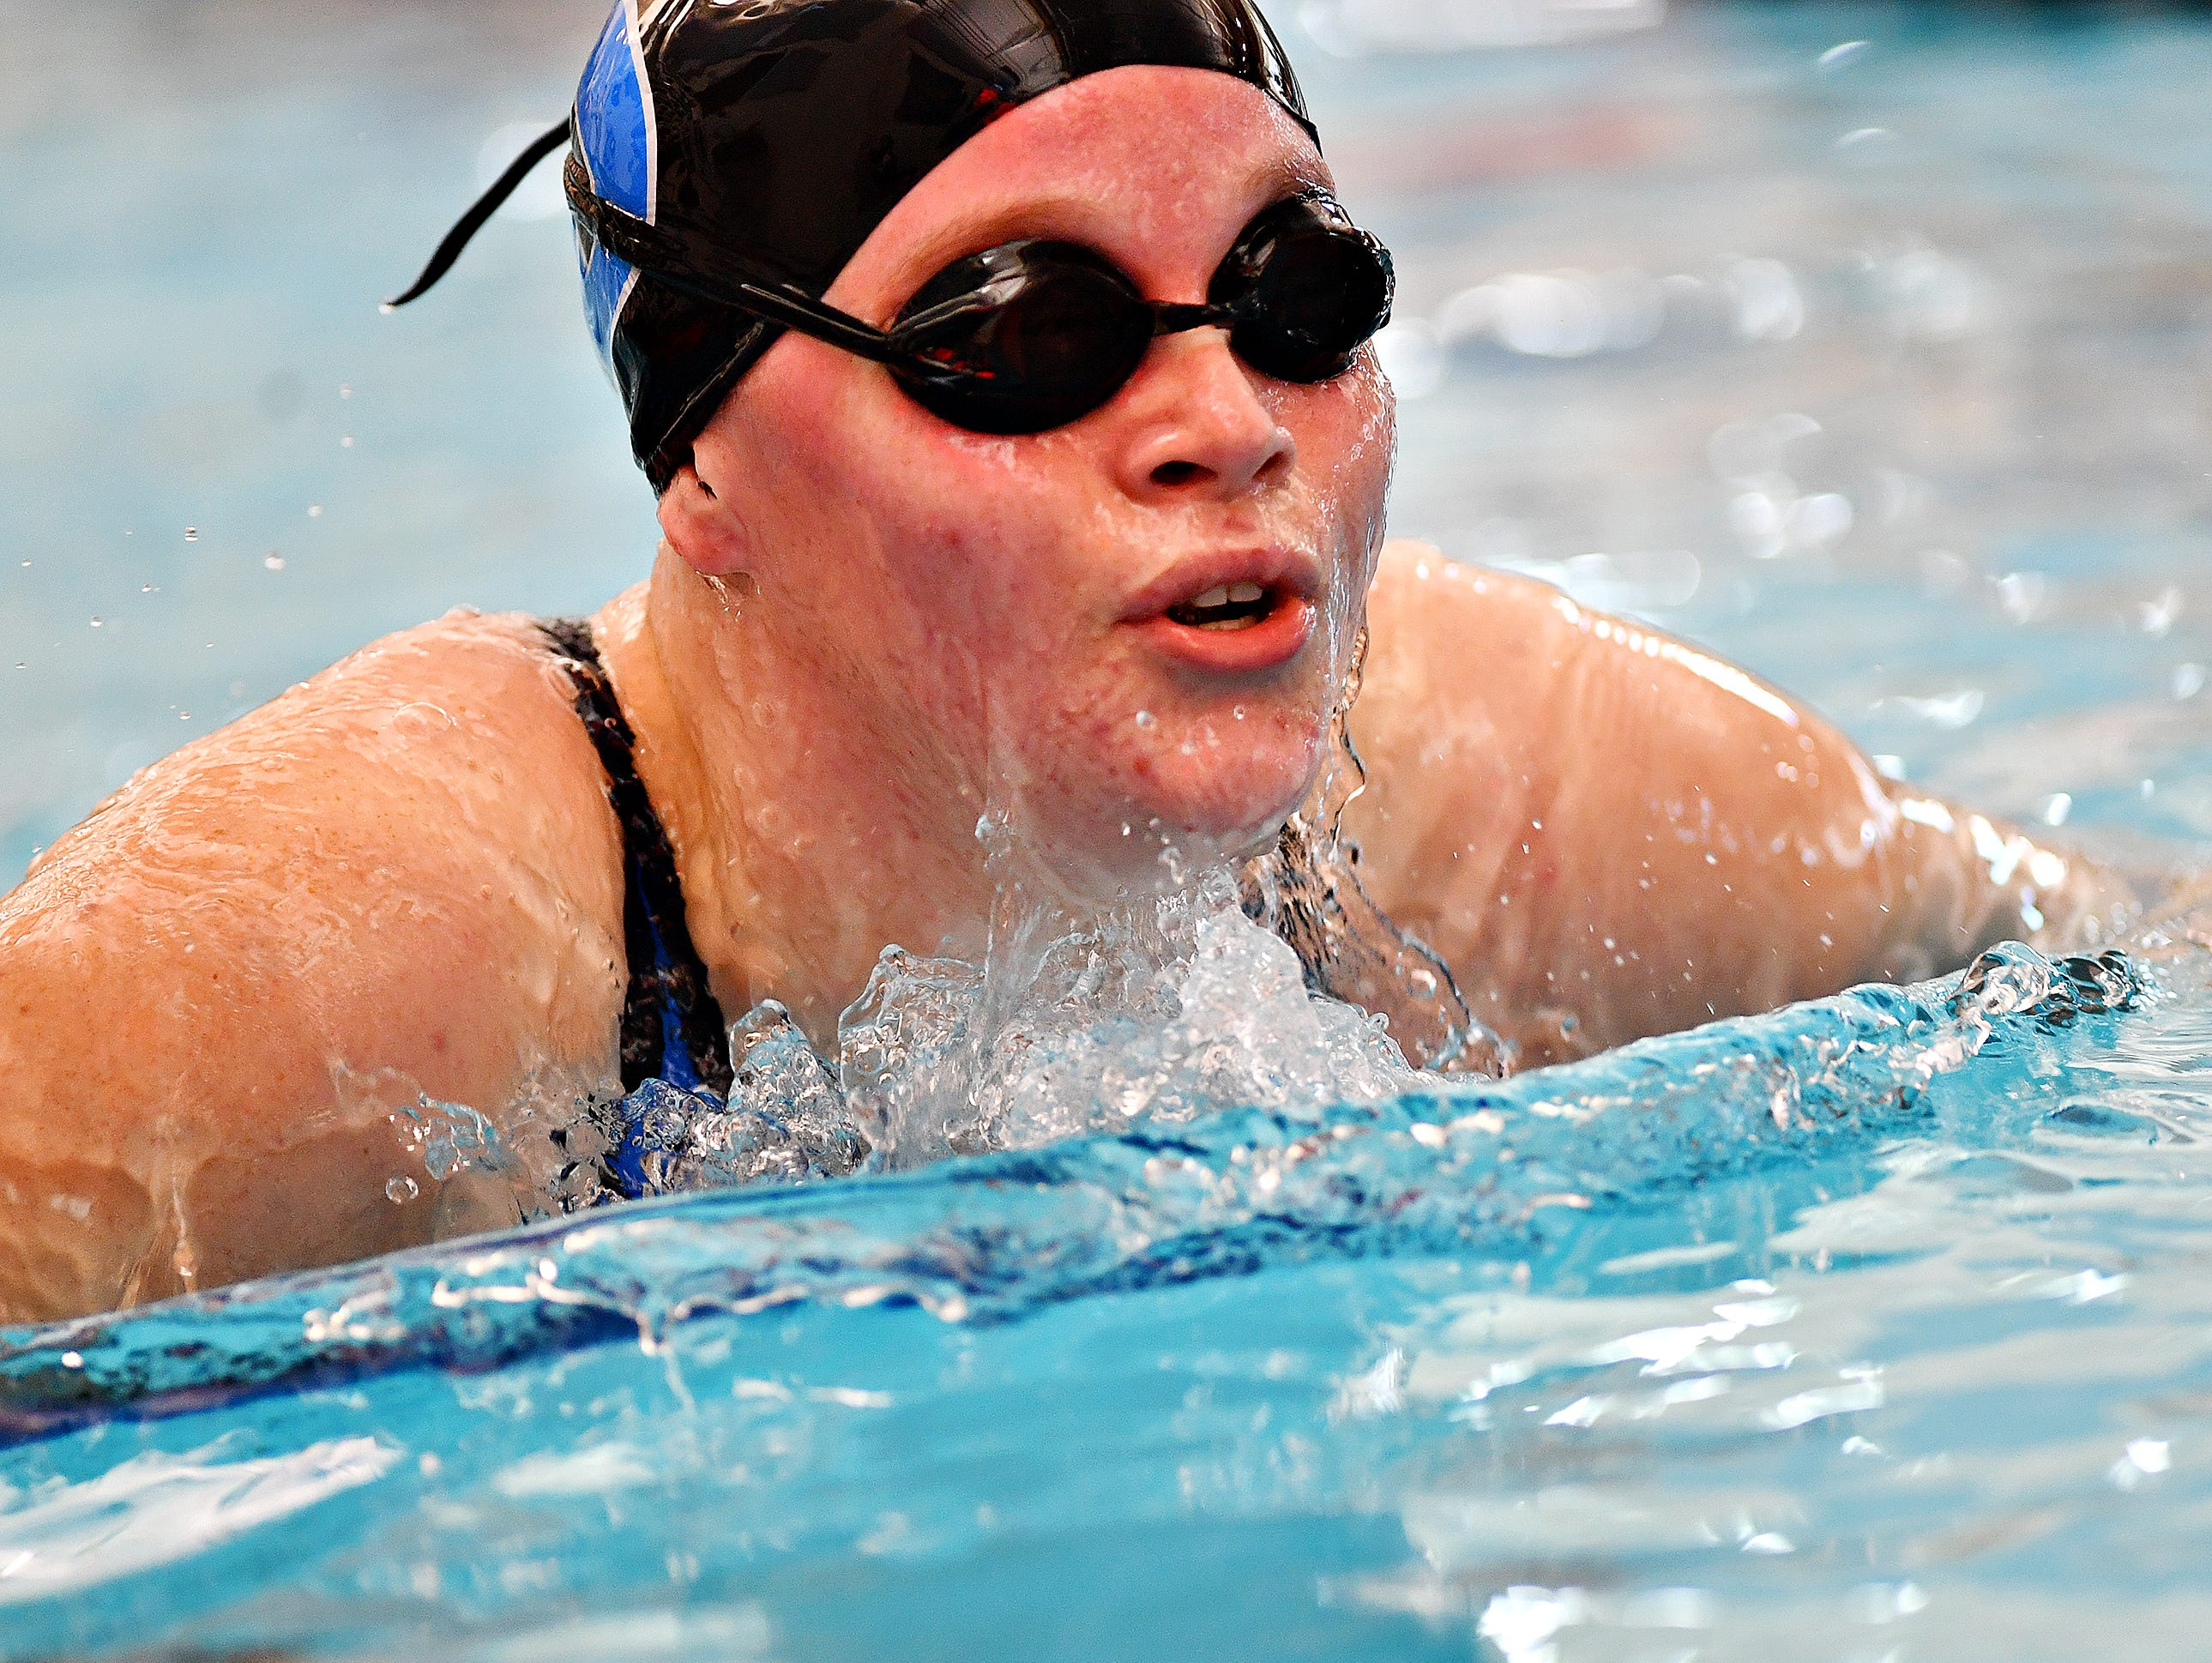 Dallastown's Marissa Locondro competes in the 100 Yard Breaststroke event during York-Adams League Swimming Championship at Central York High School in Springettsbury Township, Saturday, Feb. 9, 2019. Dawn J. Sagert photo